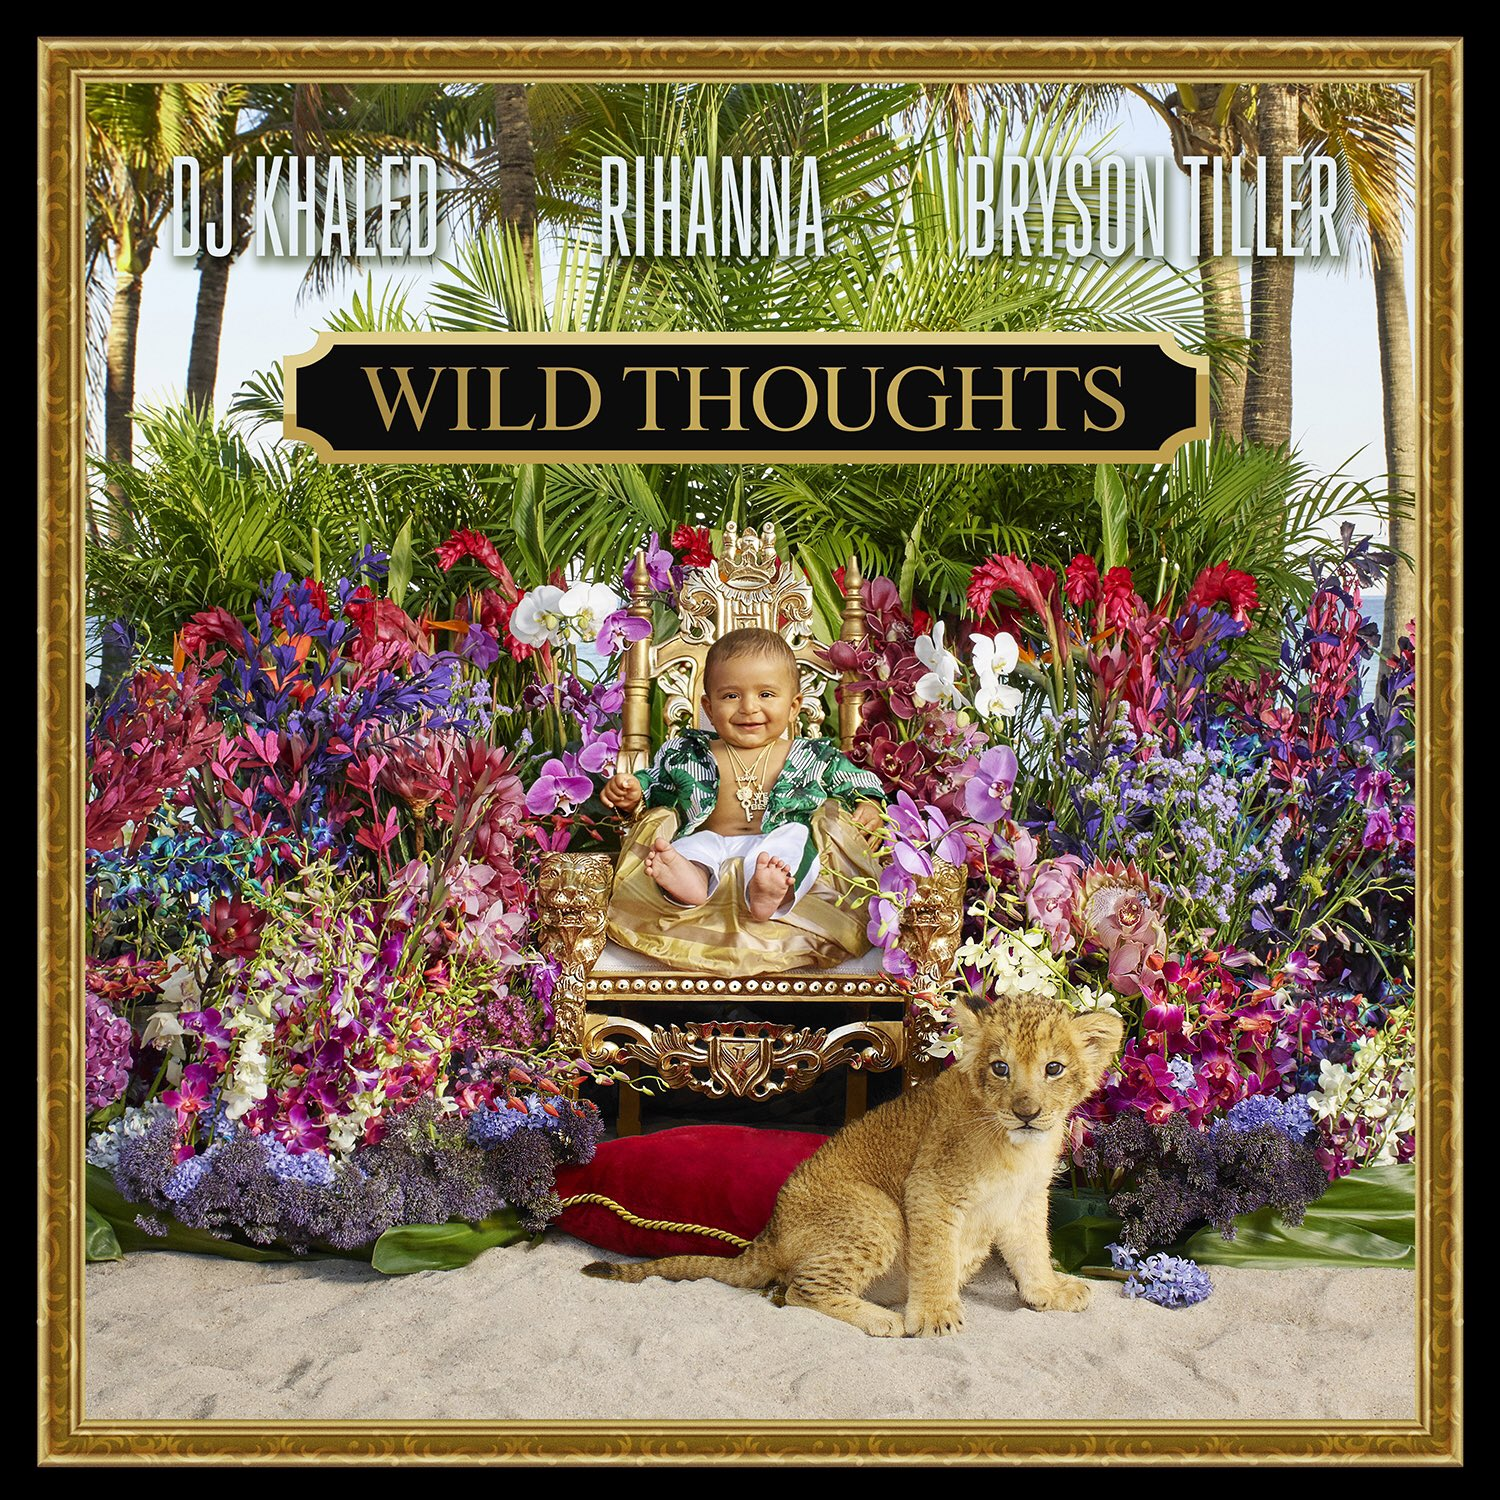 .@asahdkhaled first thing tomorrow morning!!! 6AM EST. #WILDTHOUGHTS https://t.co/5lDP0RLNSA